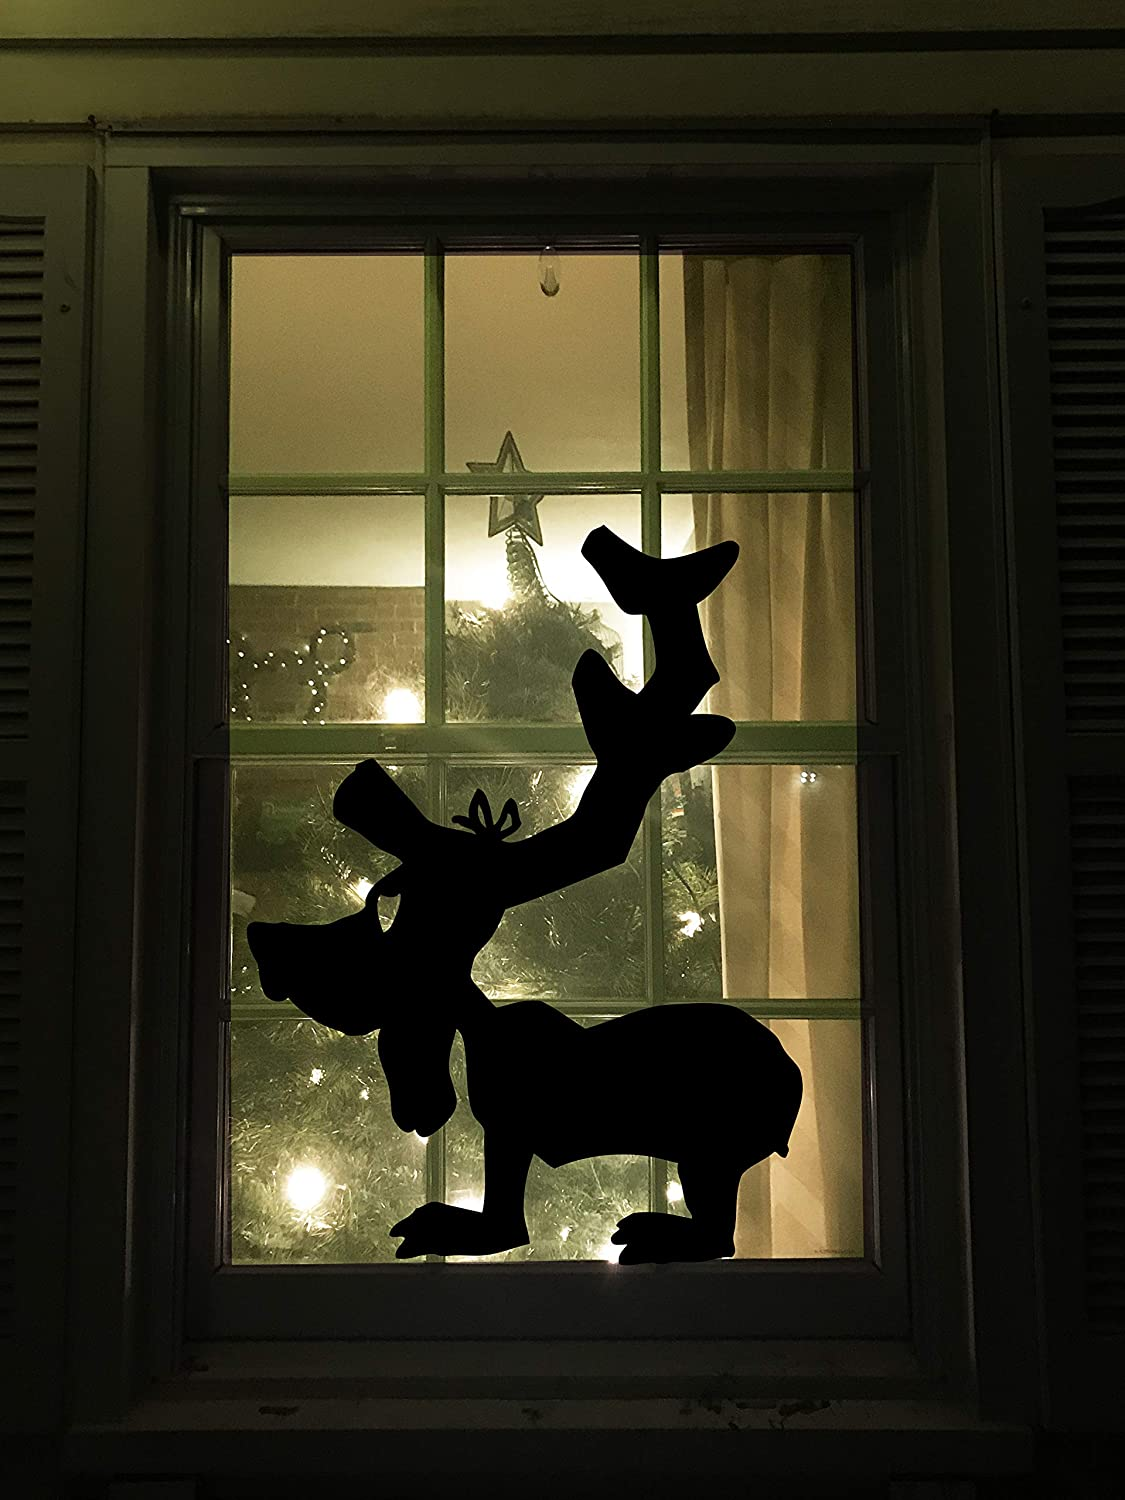 Max Dog Decal from The Grinch Holiday Christmas Window Decal How the Grinch Stole Christmas Window Silhouette